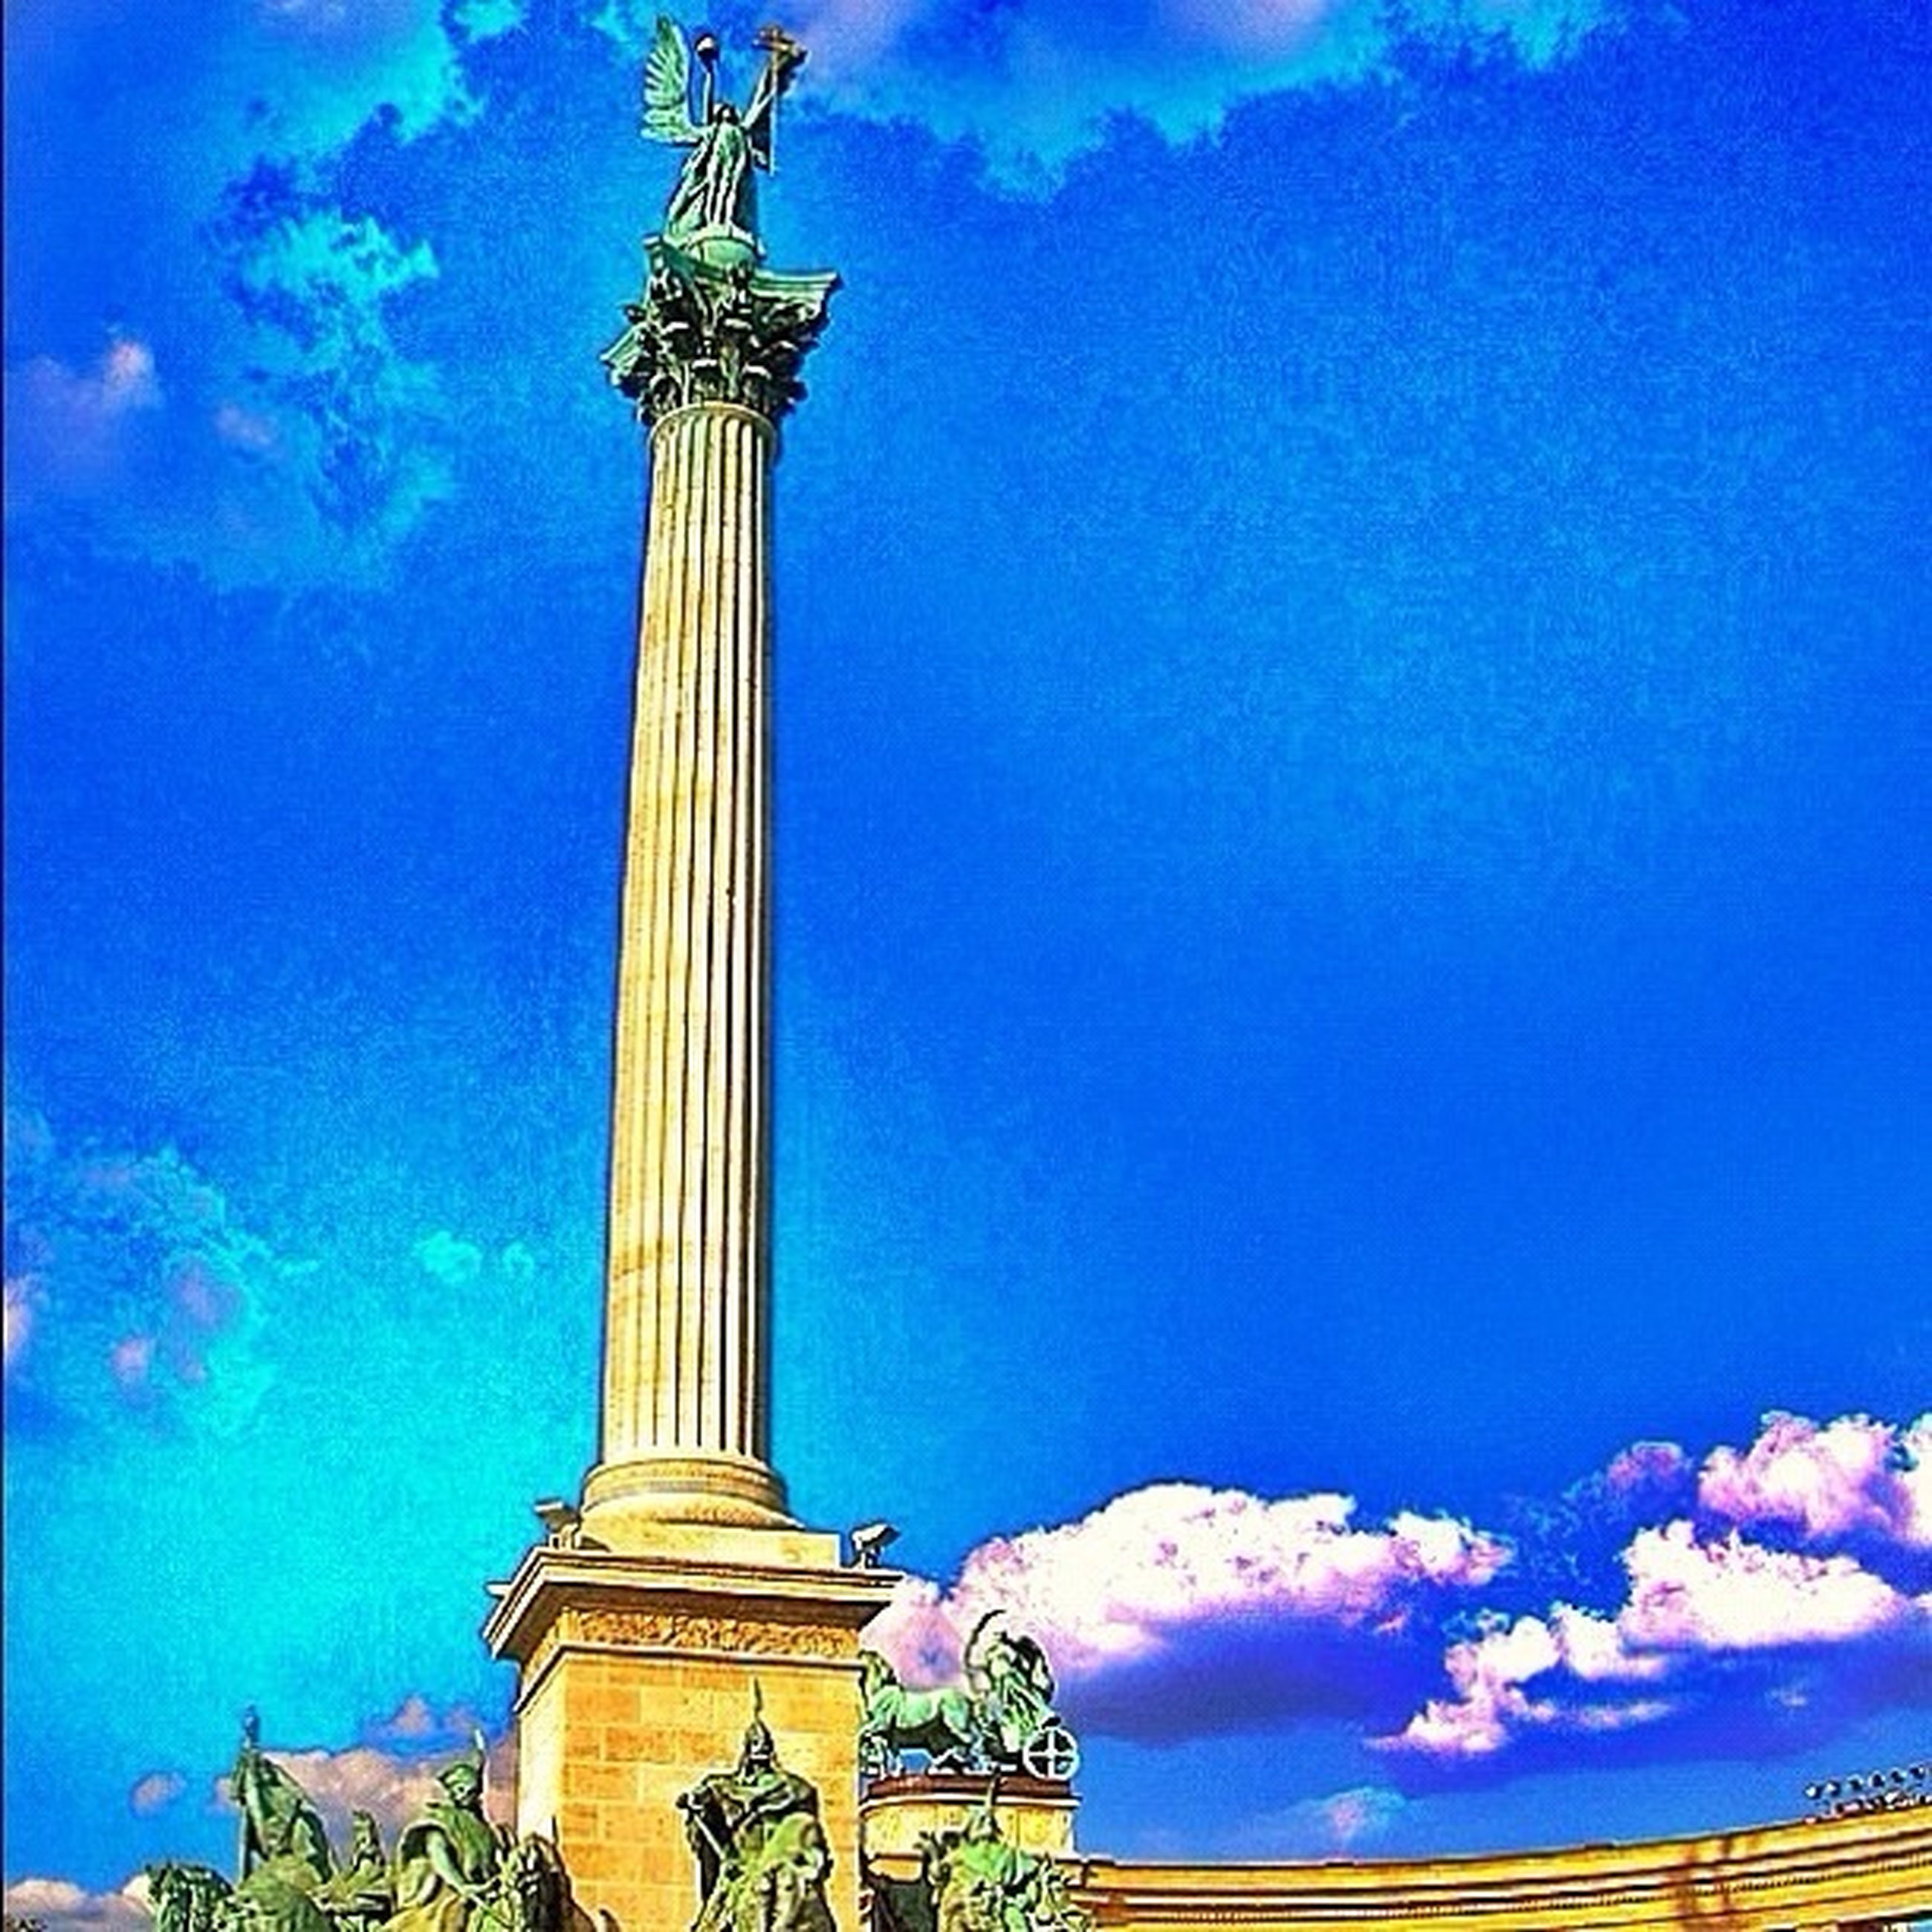 low angle view, blue, sky, built structure, architecture, cloud - sky, building exterior, cloud, famous place, history, travel destinations, religion, outdoors, tall - high, tower, travel, no people, place of worship, tourism, international landmark